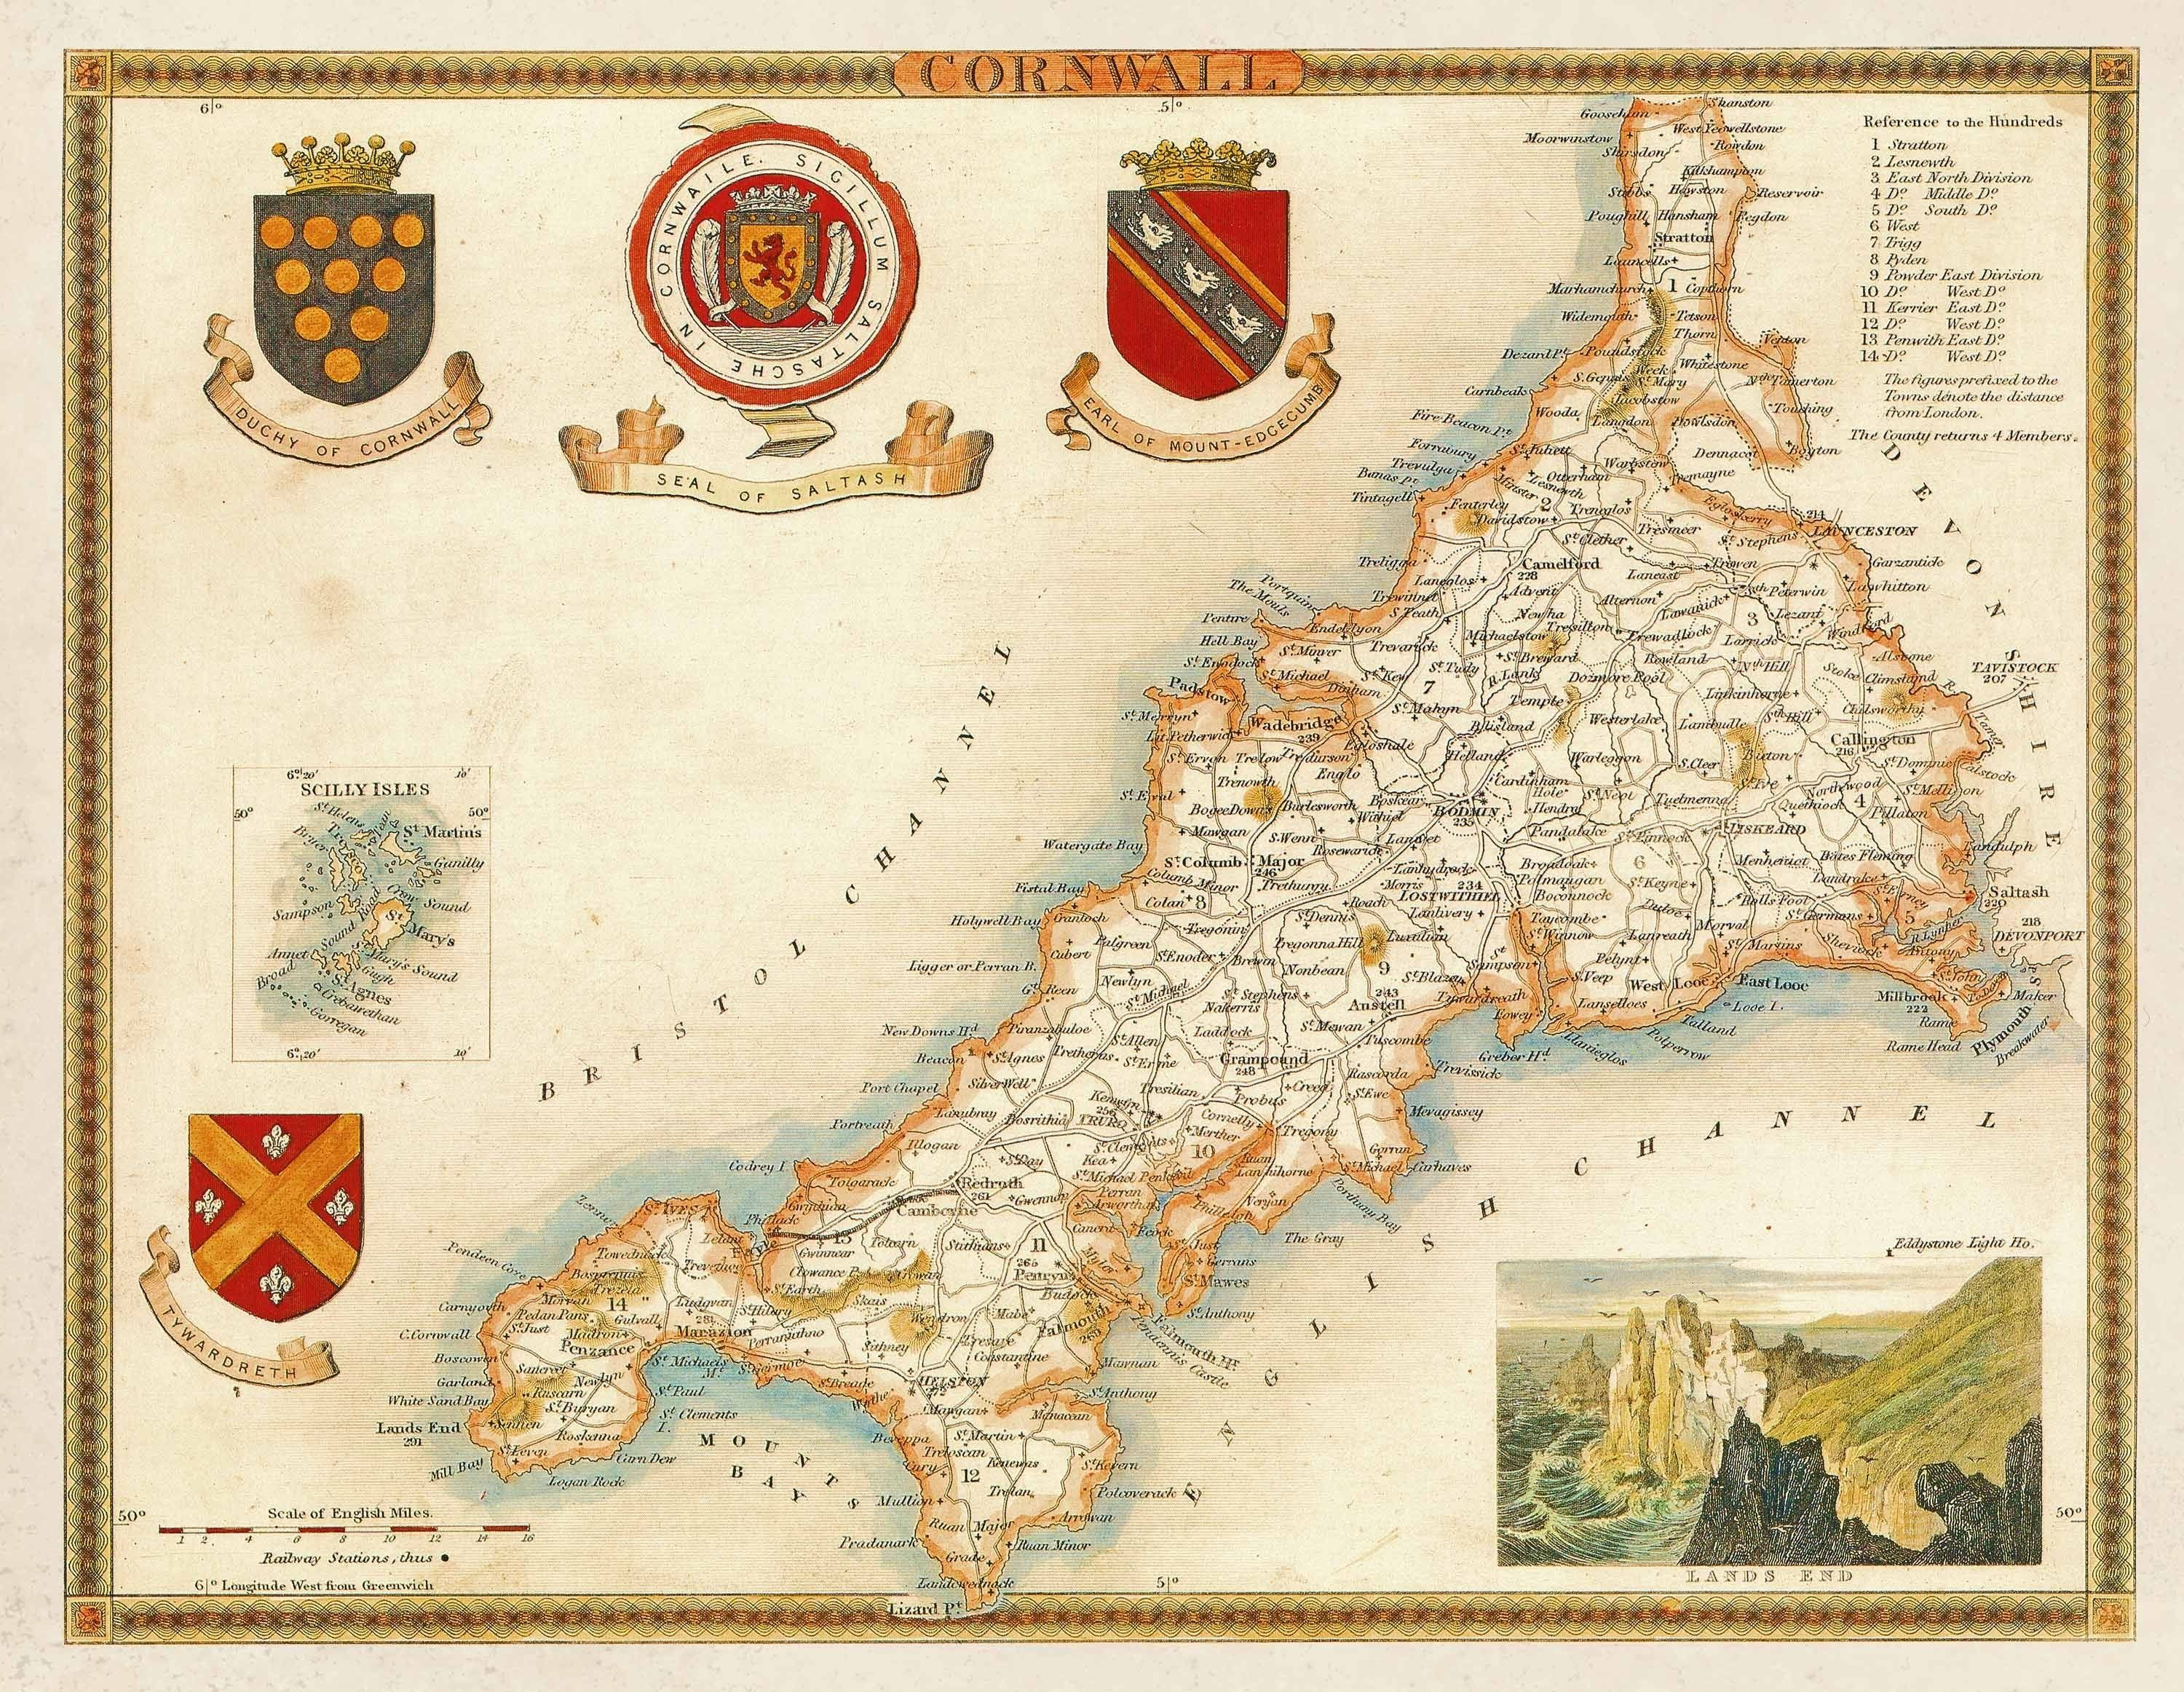 Old map of cornwall by thomas moule circa 1850 mapmania vintage maps uk promotion shop for promotional vintage maps uk on gumiabroncs Images